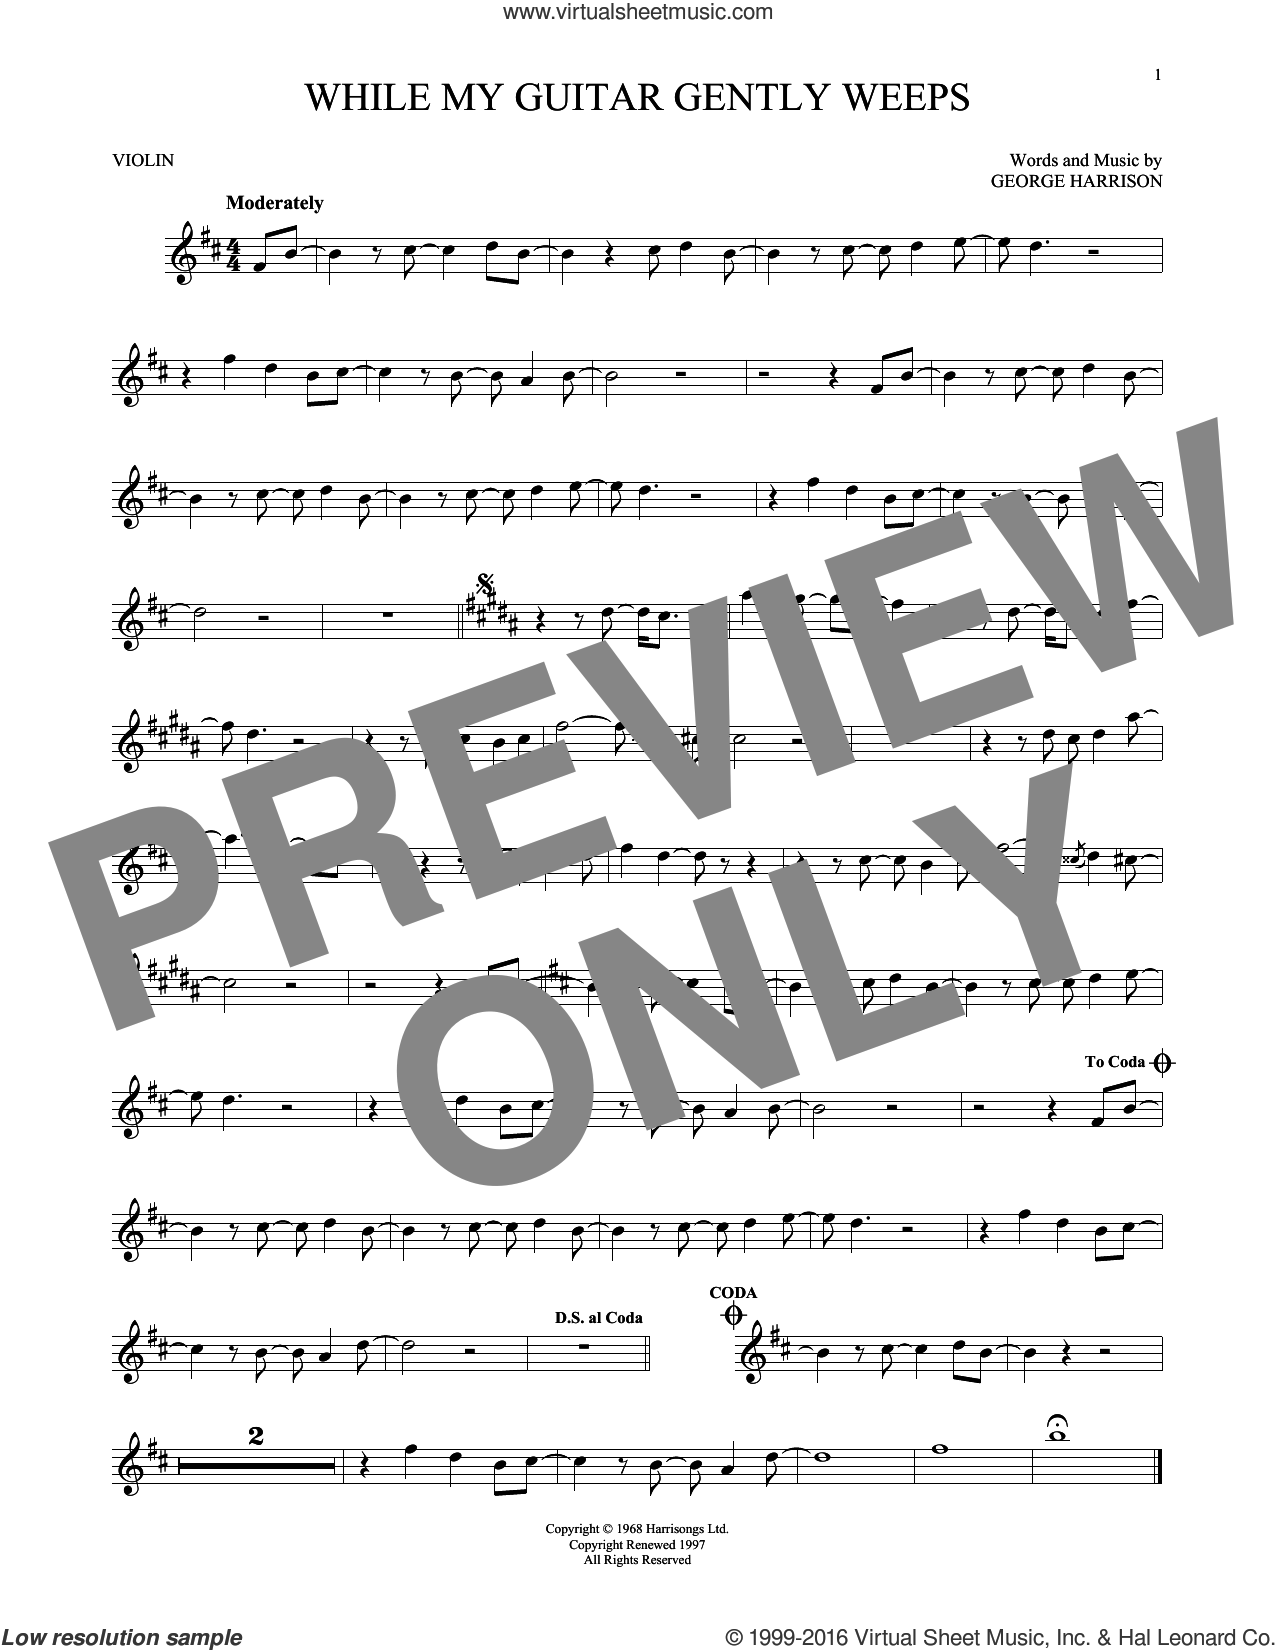 While My Guitar Gently Weeps sheet music for violin solo by The Beatles. Score Image Preview.